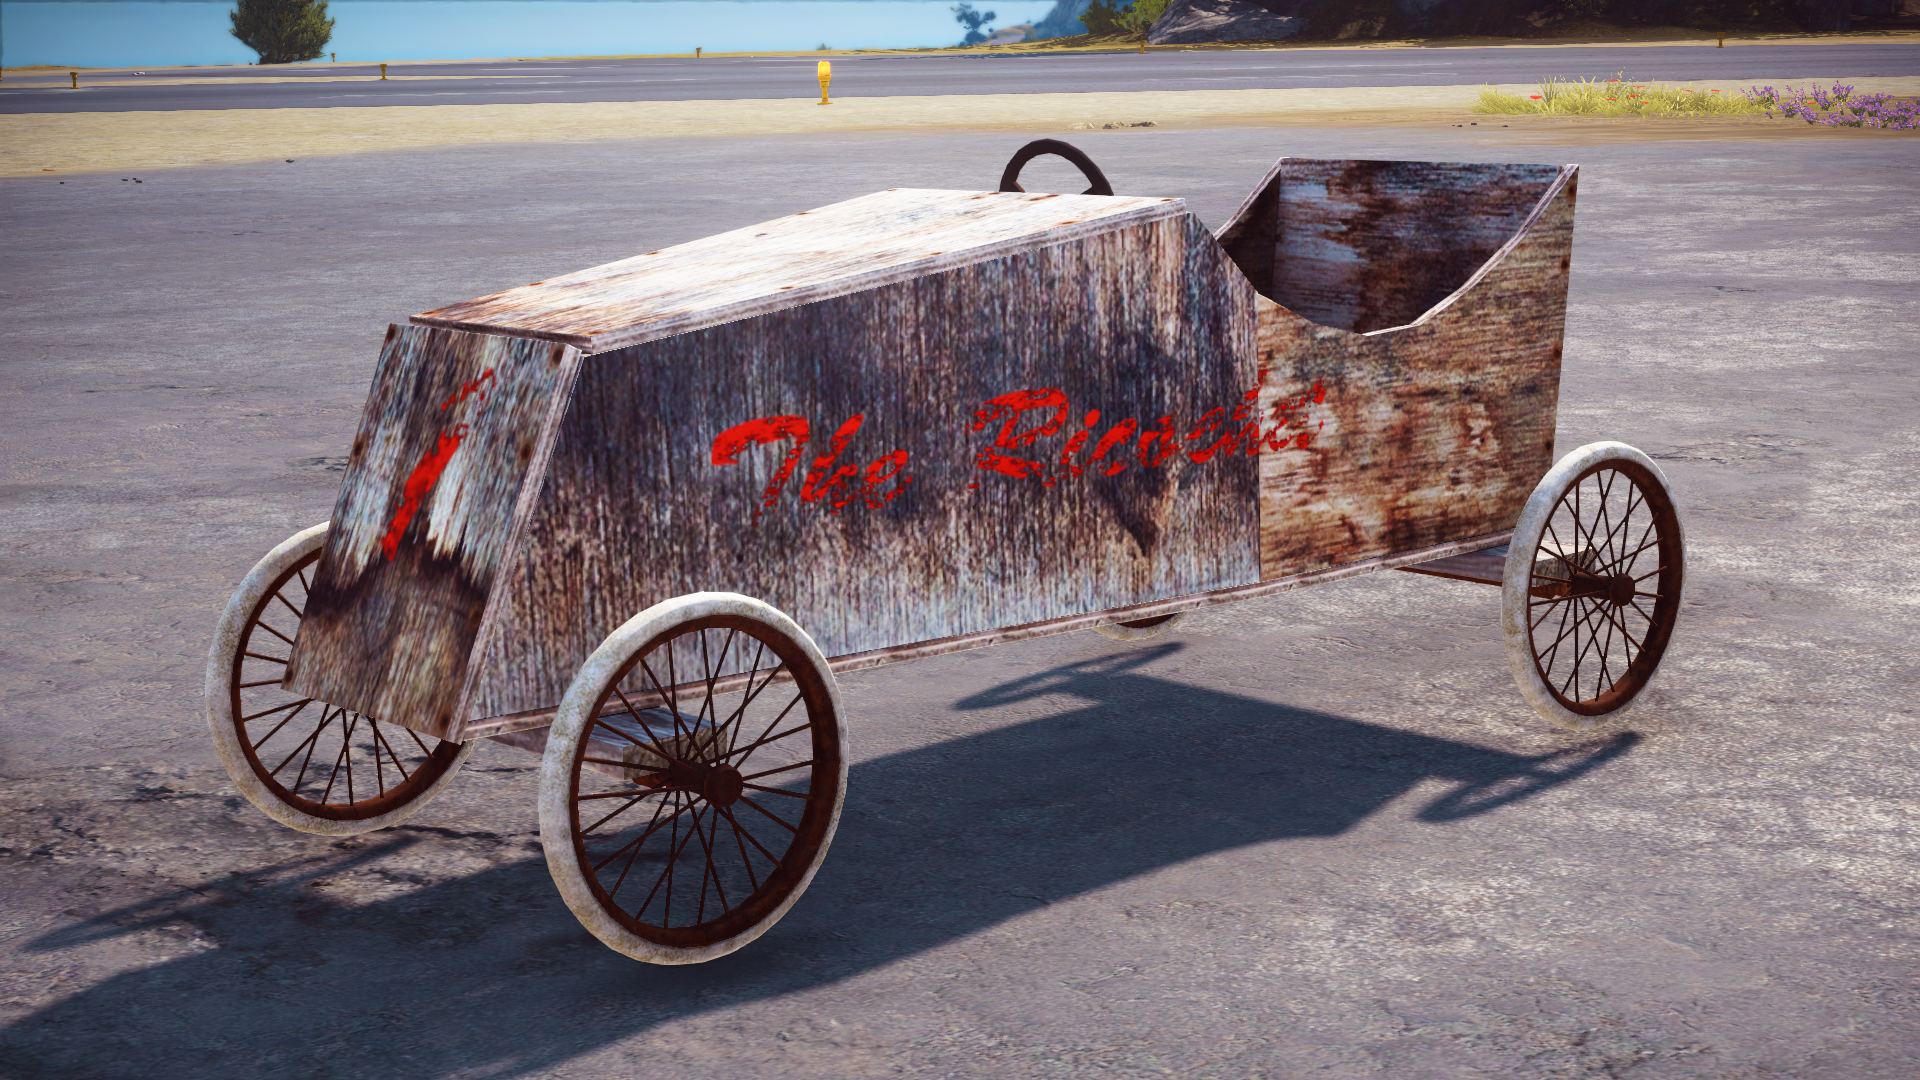 Soap box car just cause 3